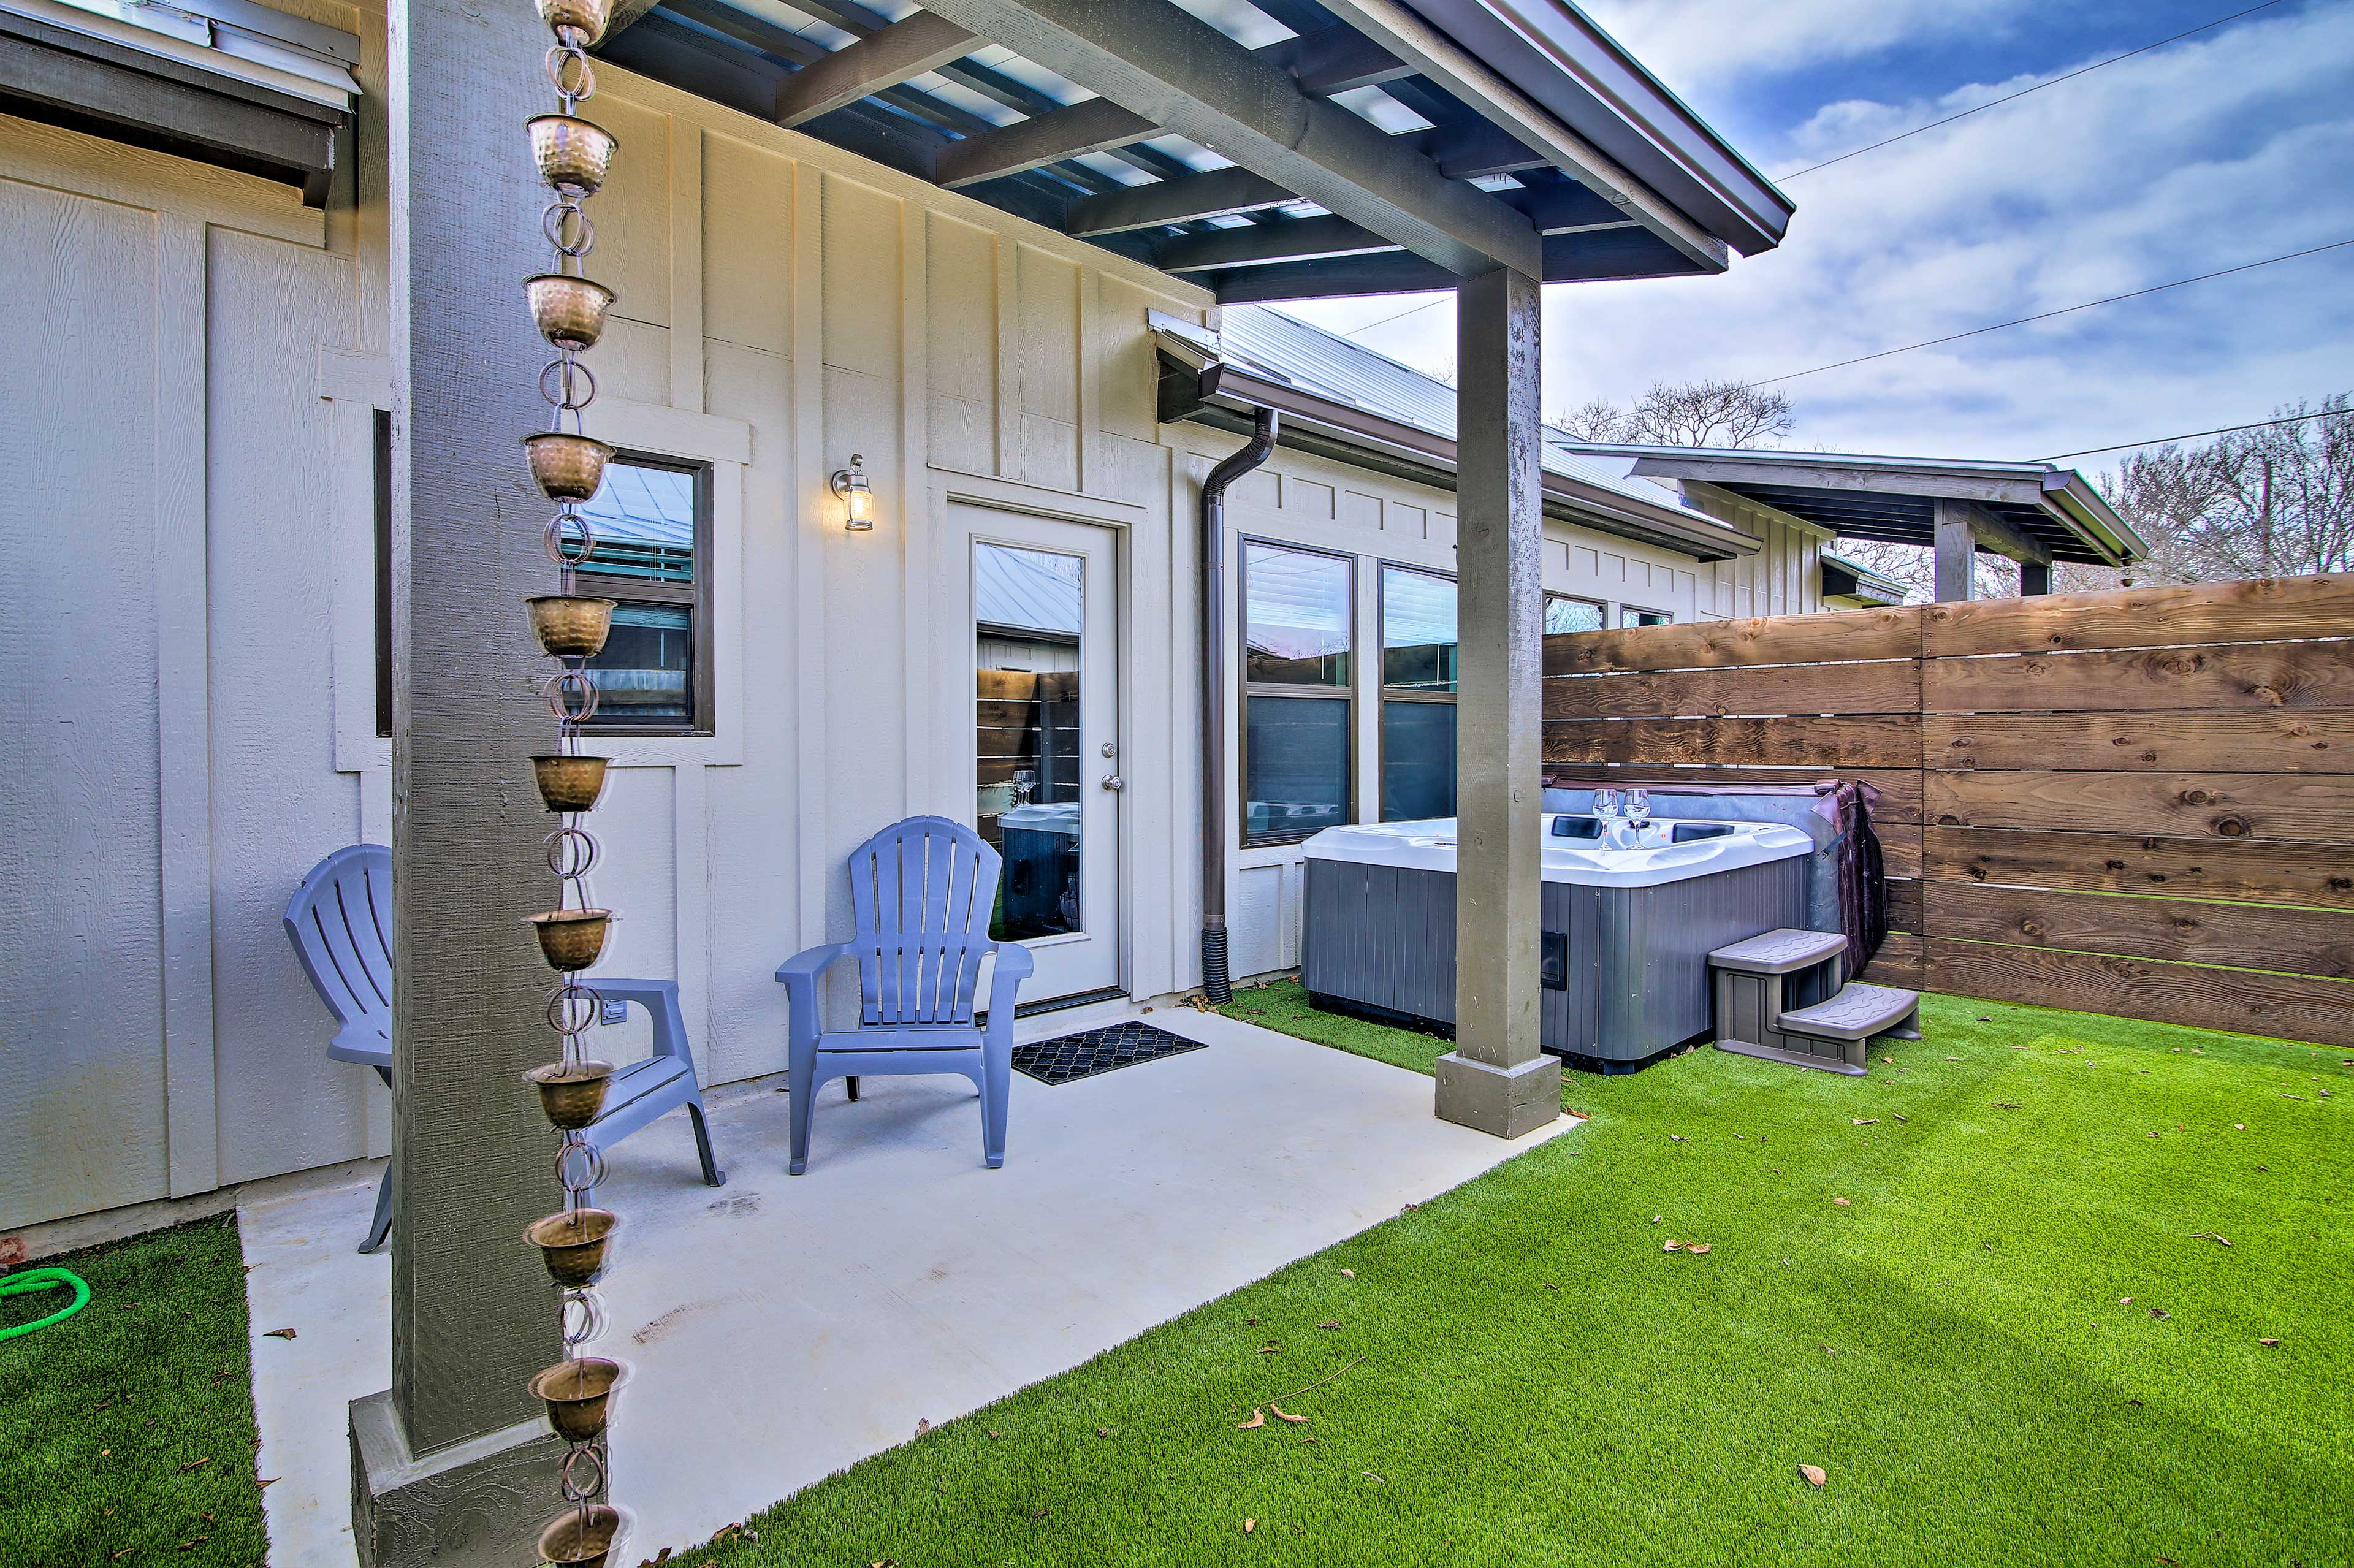 The private yard has a hot tub and artificial grass.